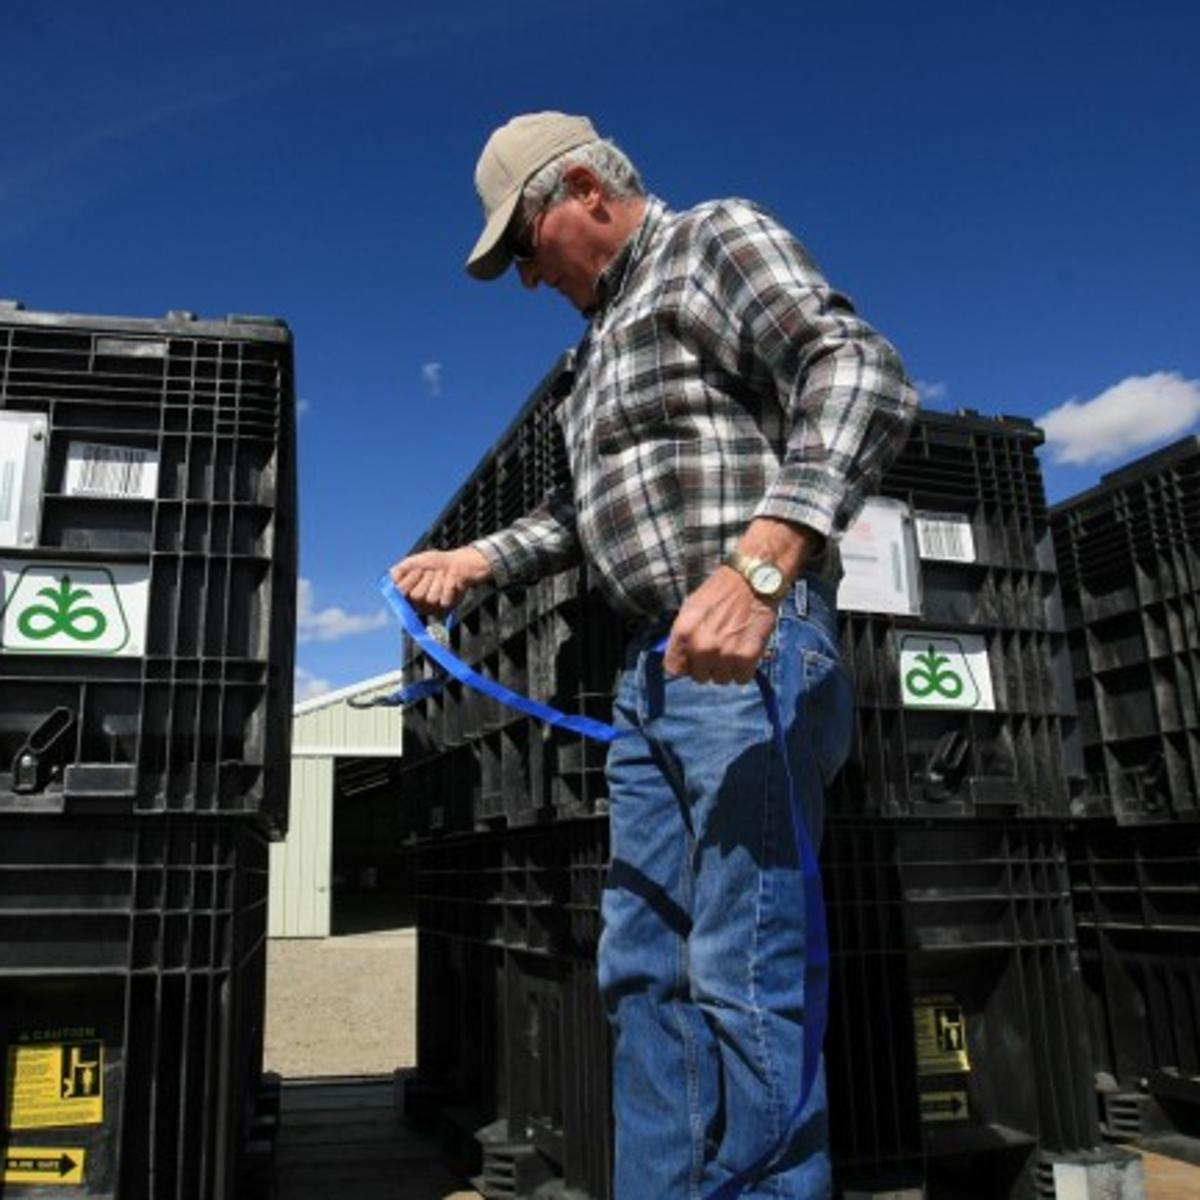 Once a Montana anomaly, corn takes root | Montana News